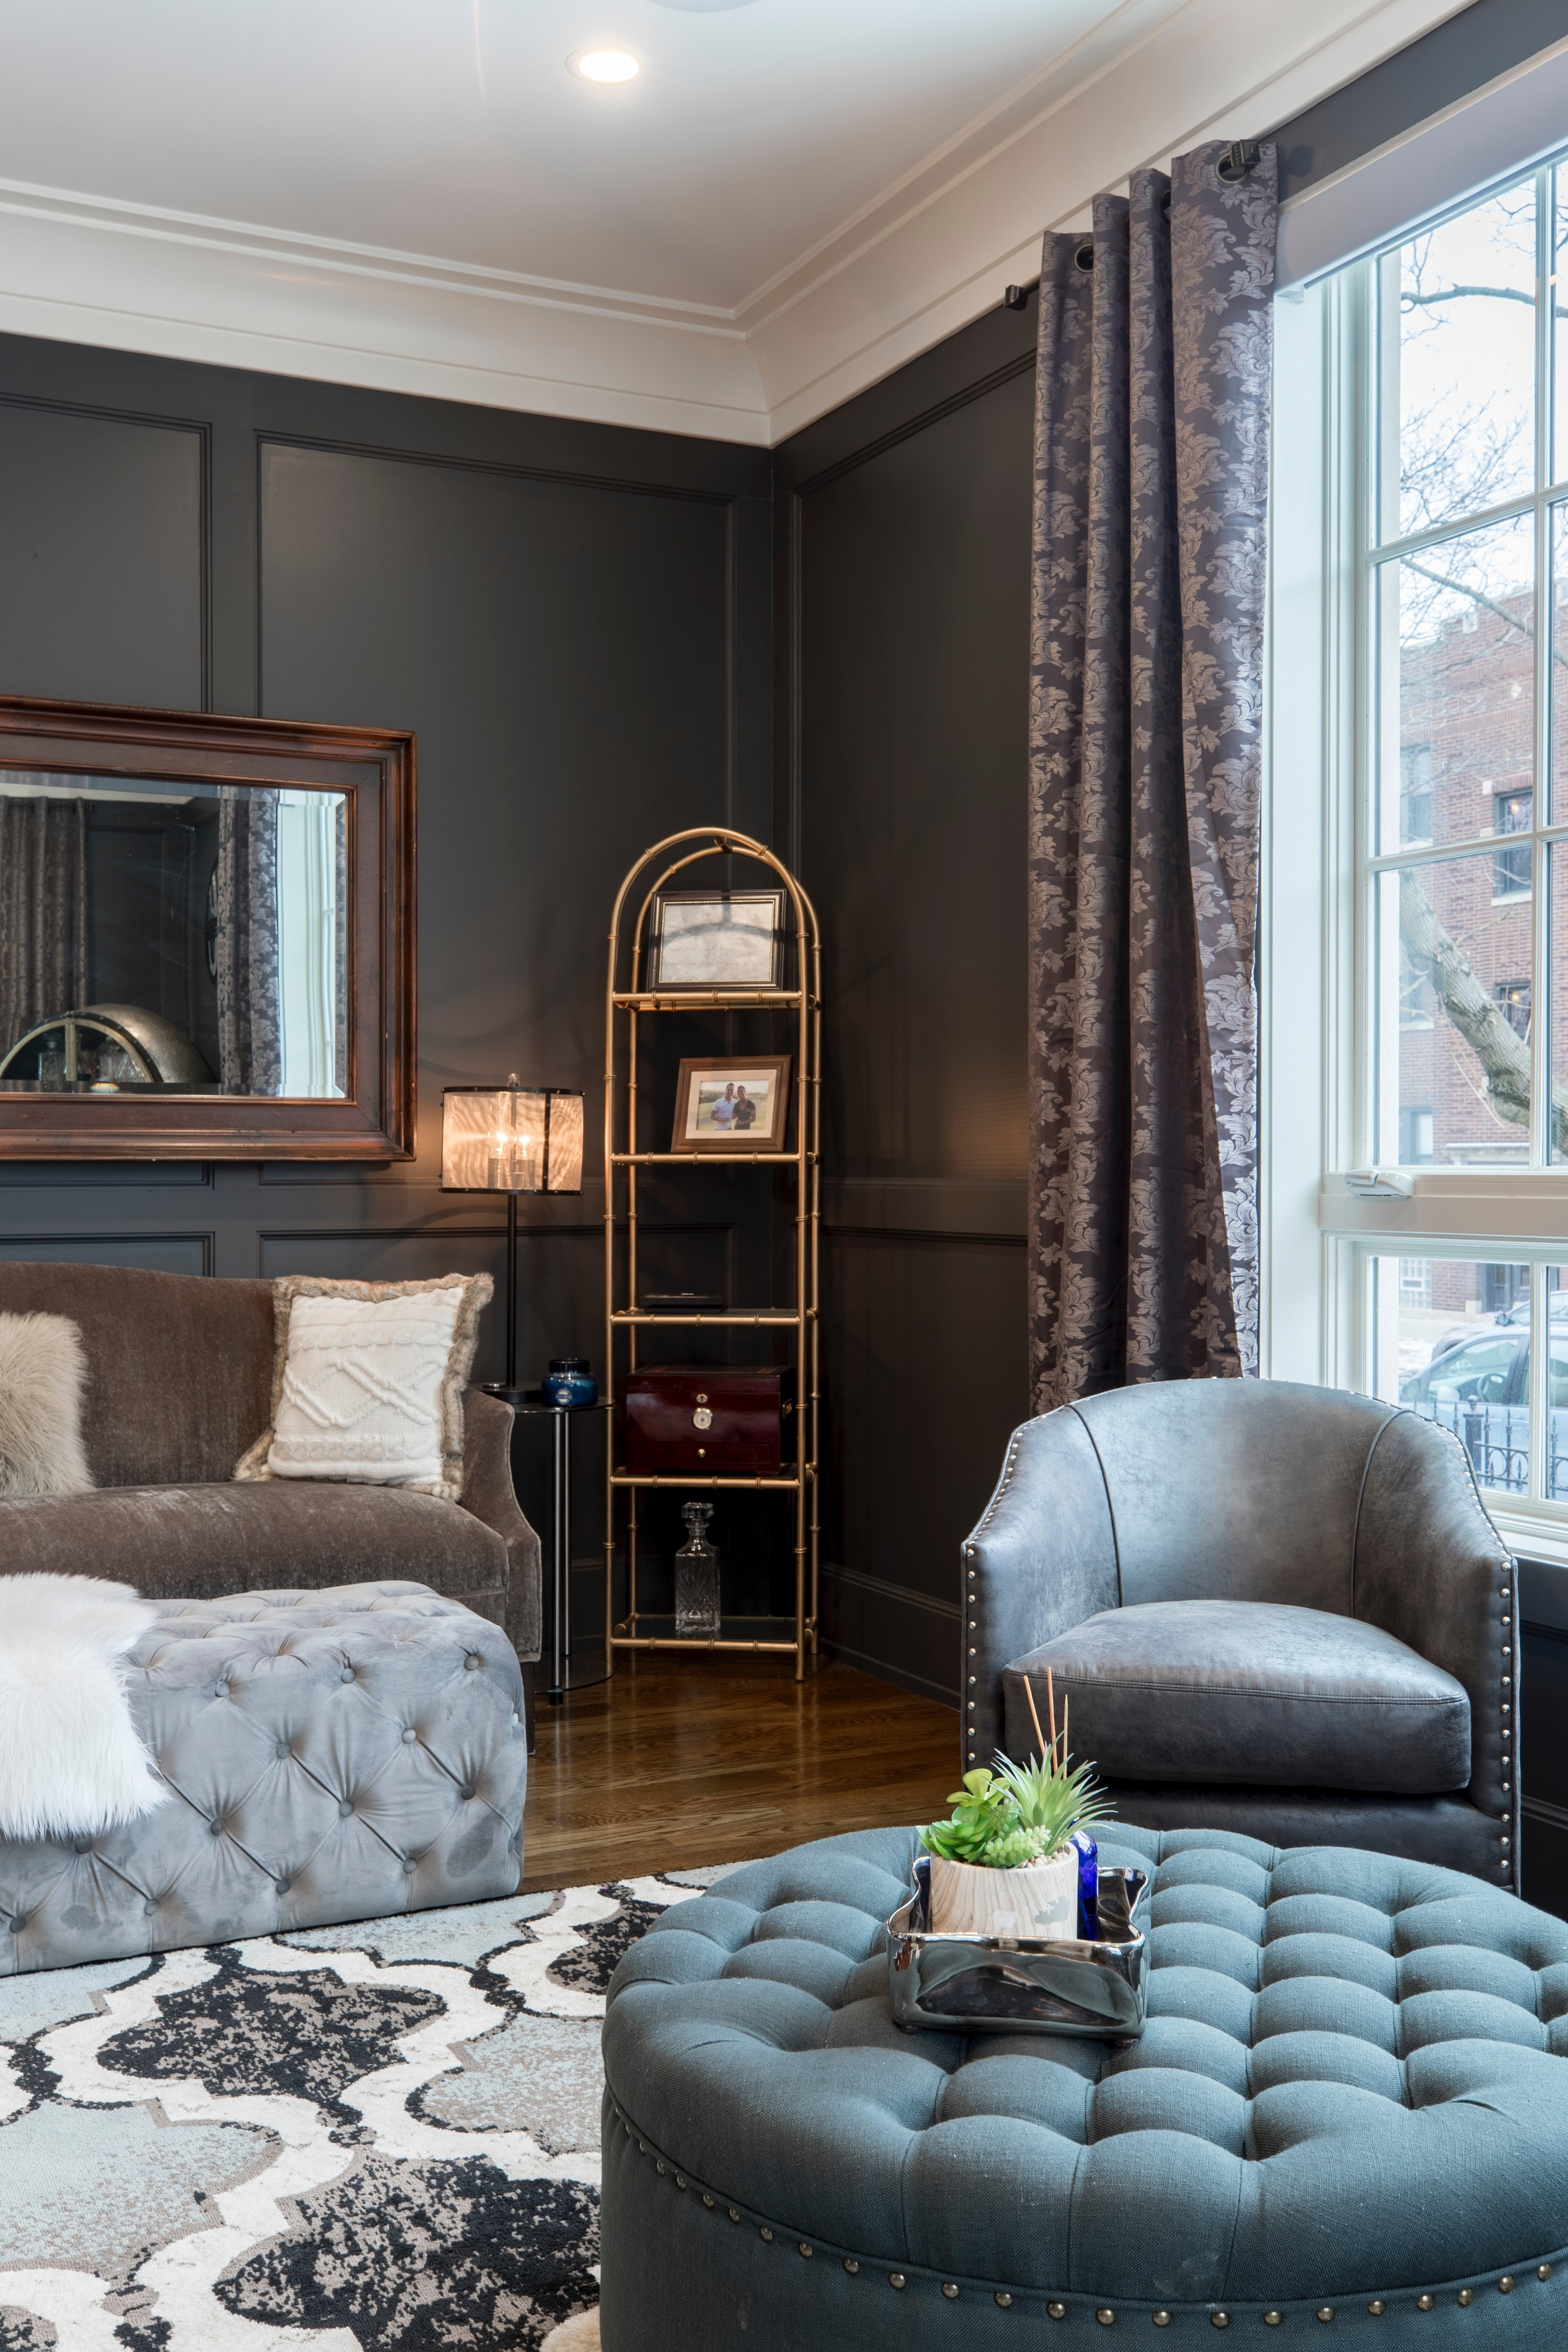 Pictured - An interior design of a house, a gray leather tub chair, a blue ottoman and dark gray walls   Source: Pexels